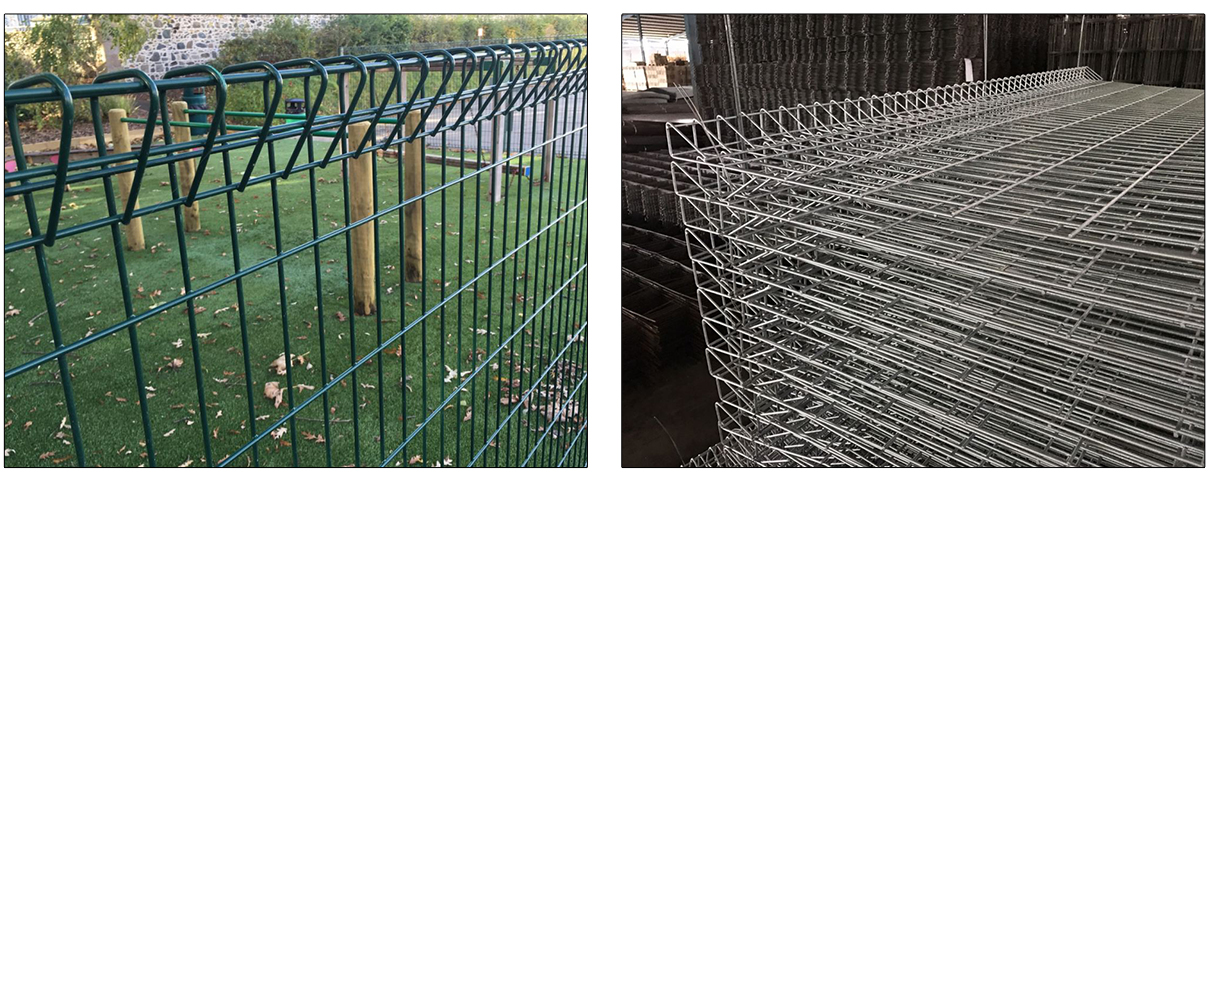 Hot Dipped Galvanized brc bending top fence heavy gauge rigid welded ...